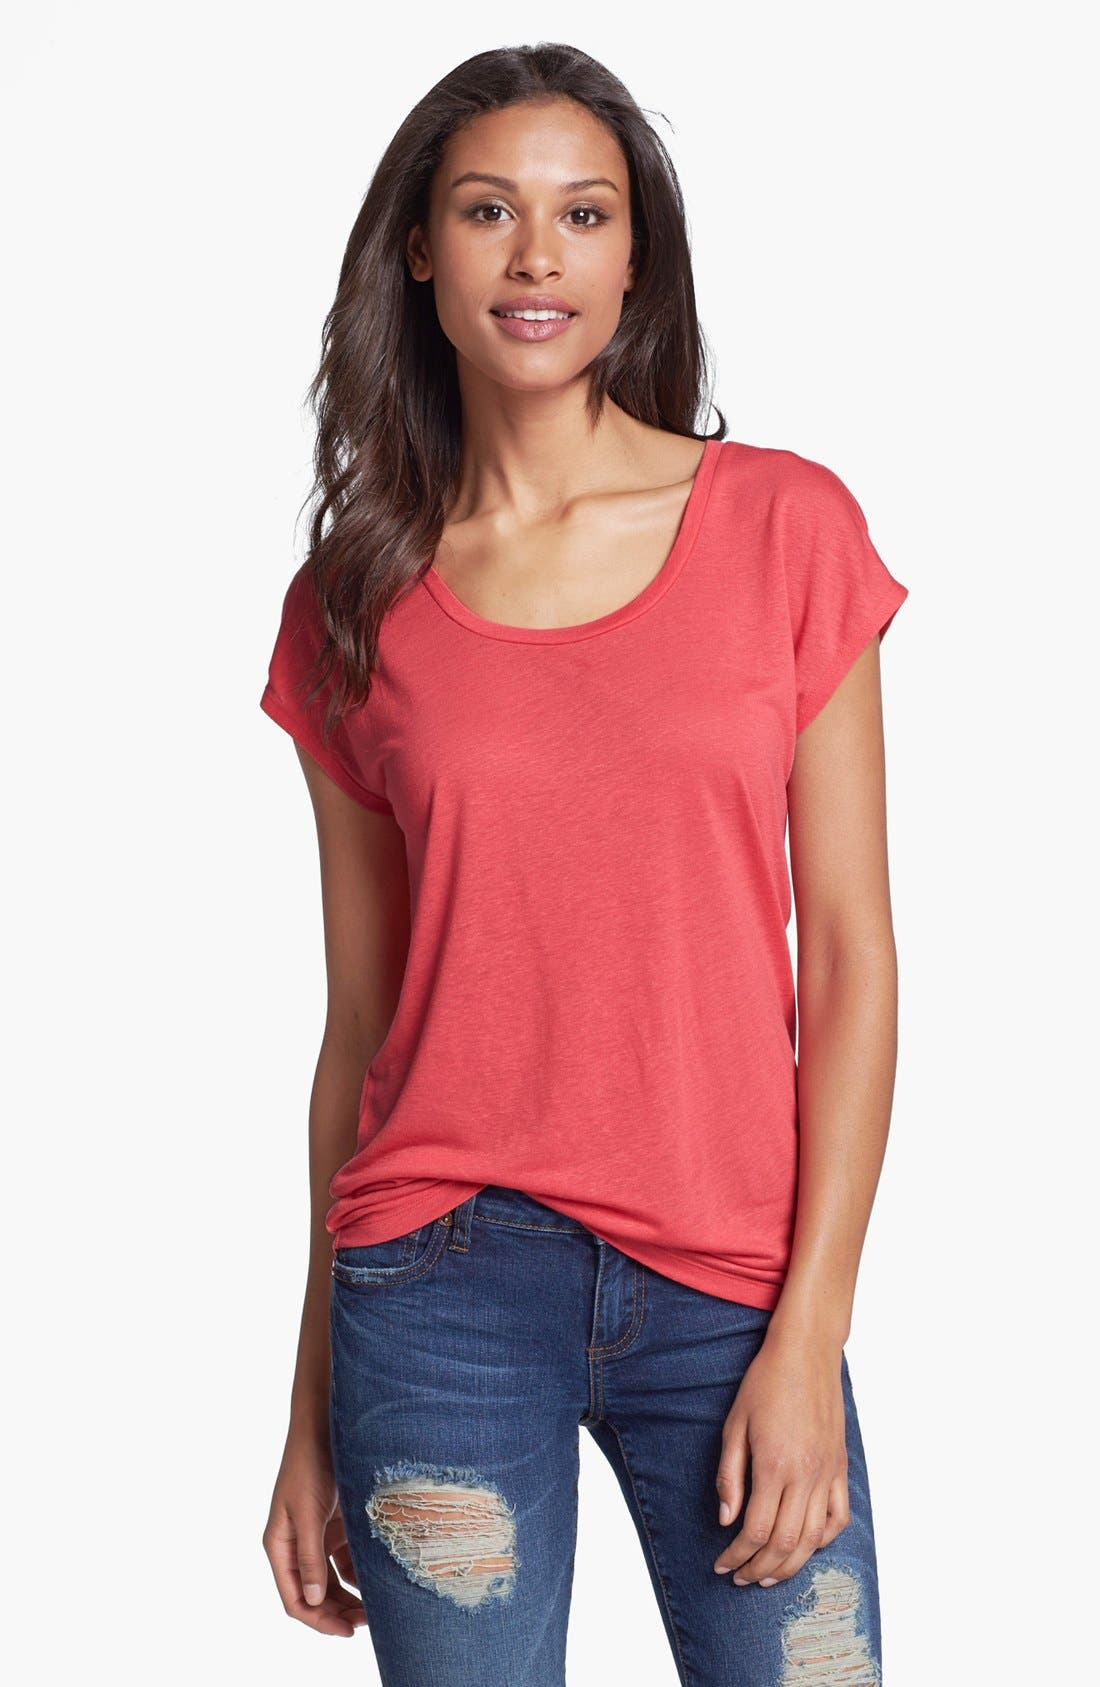 Alternate Image 1 Selected - Caslon® Linen Blend Scoop Neck Tee (Regular & Petite)